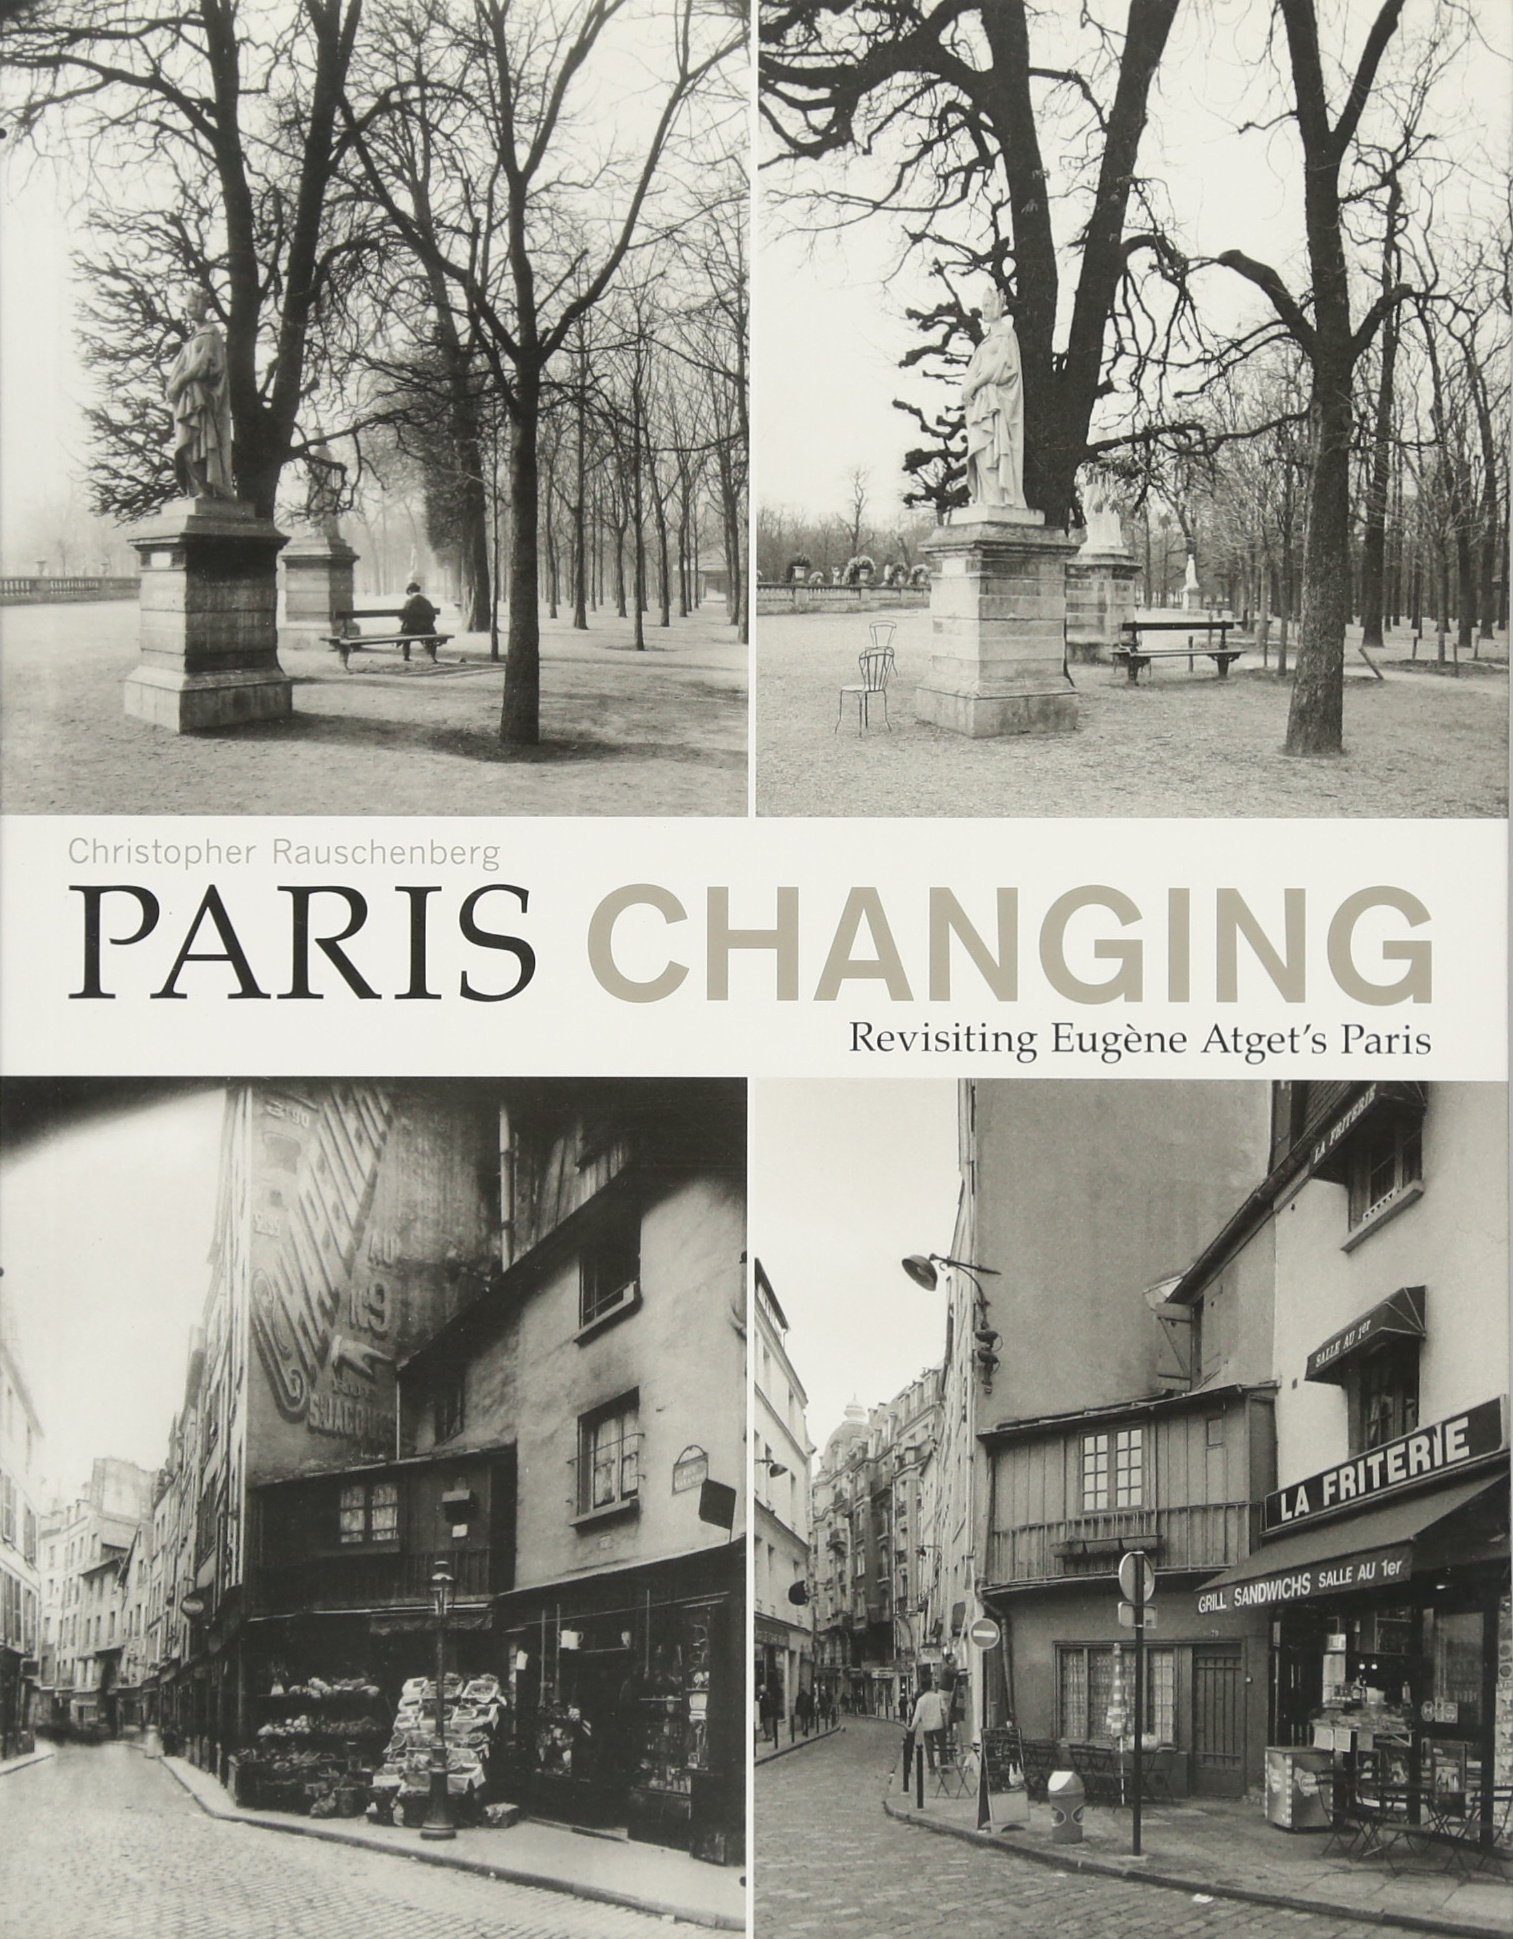 Paris Changing: Revisiting Eugene Atgets Paris: Amazon.es: Rauschenberg, Christopher: Libros en idiomas extranjeros